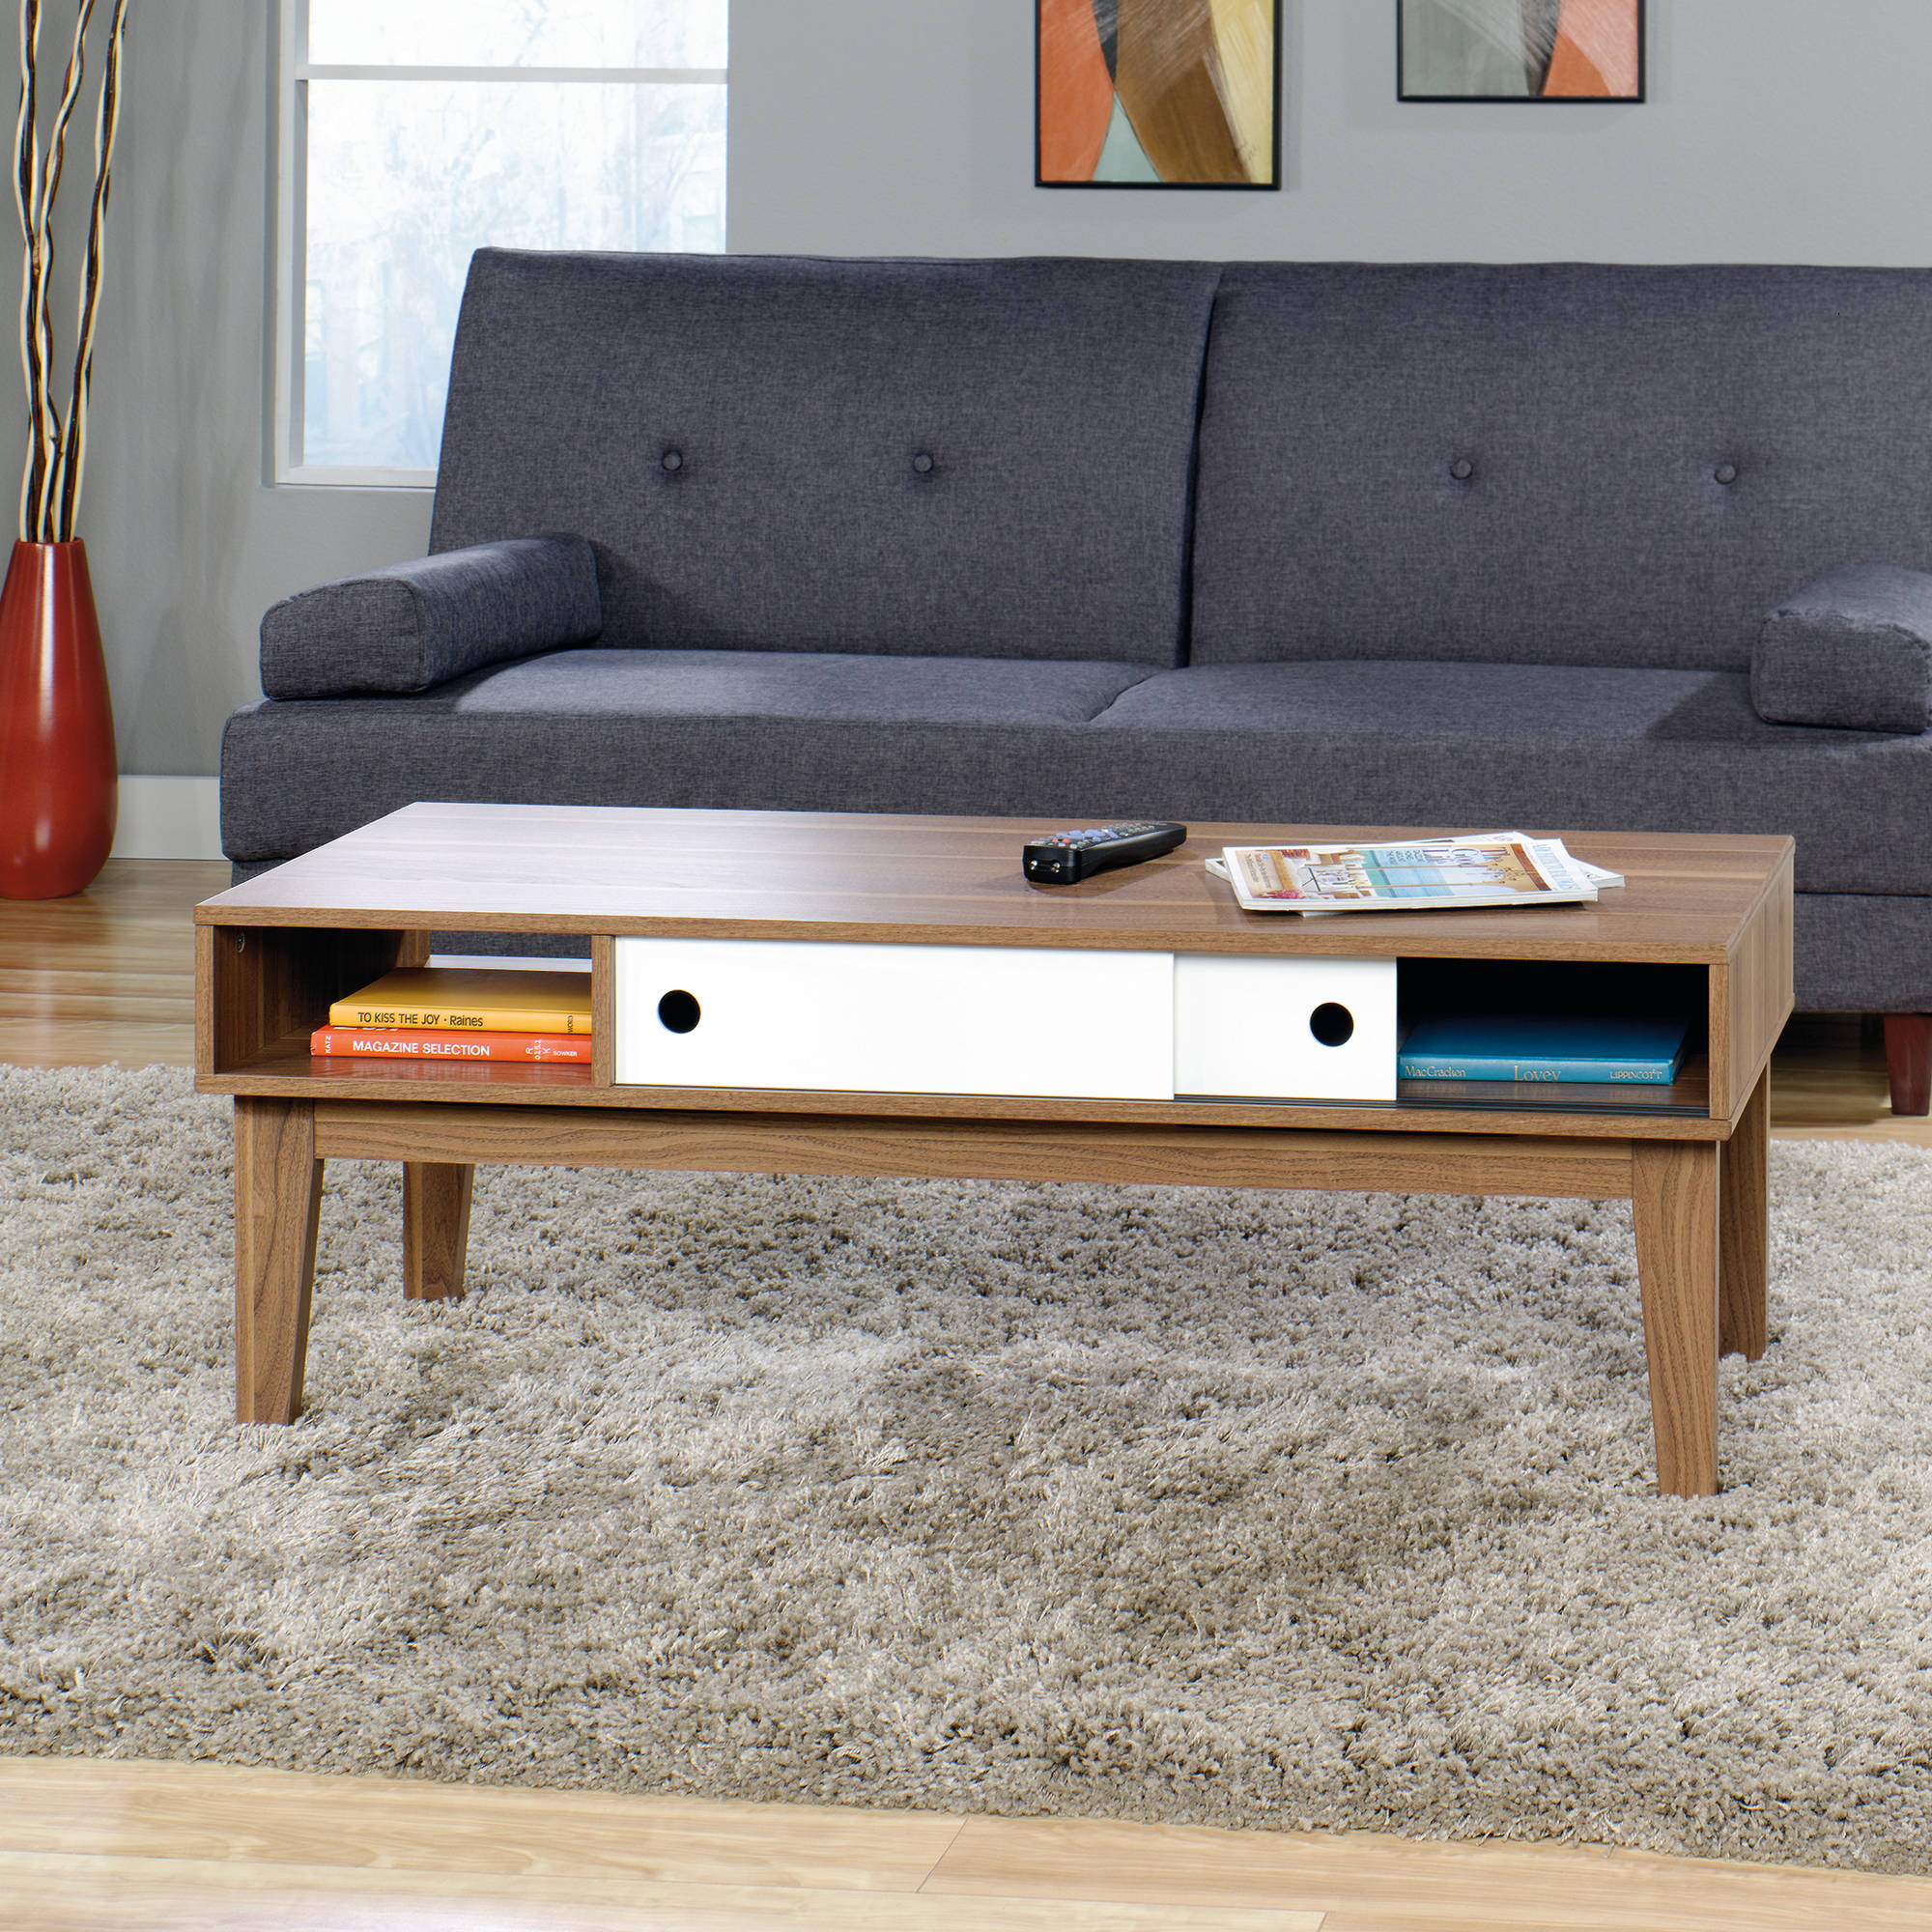 Sauder Soft Modern Coffee Table, Walnut Finish with White Accent